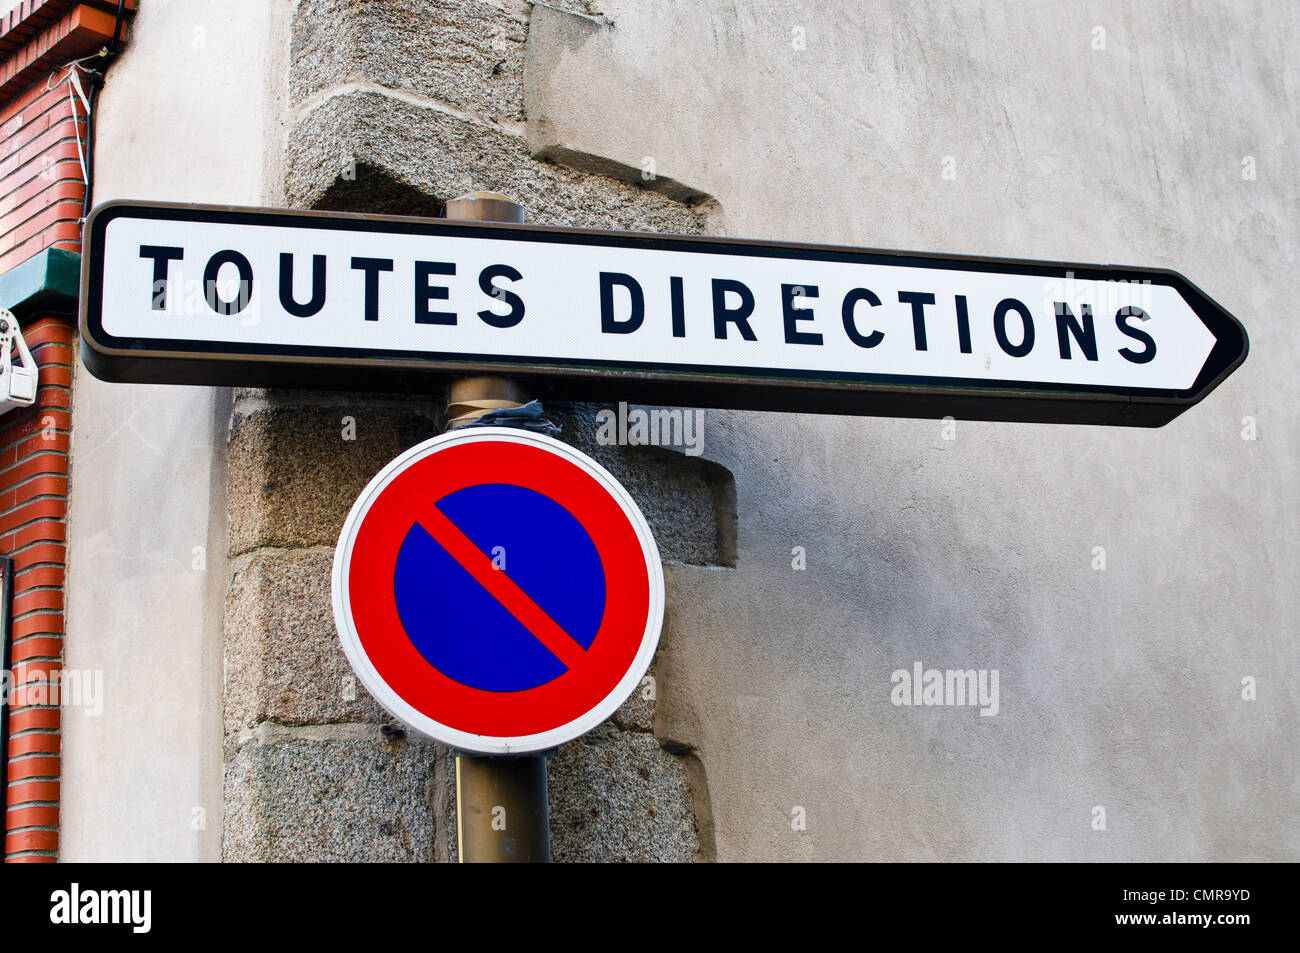 Toutes Directions (all directions) sign in France - Stock Image